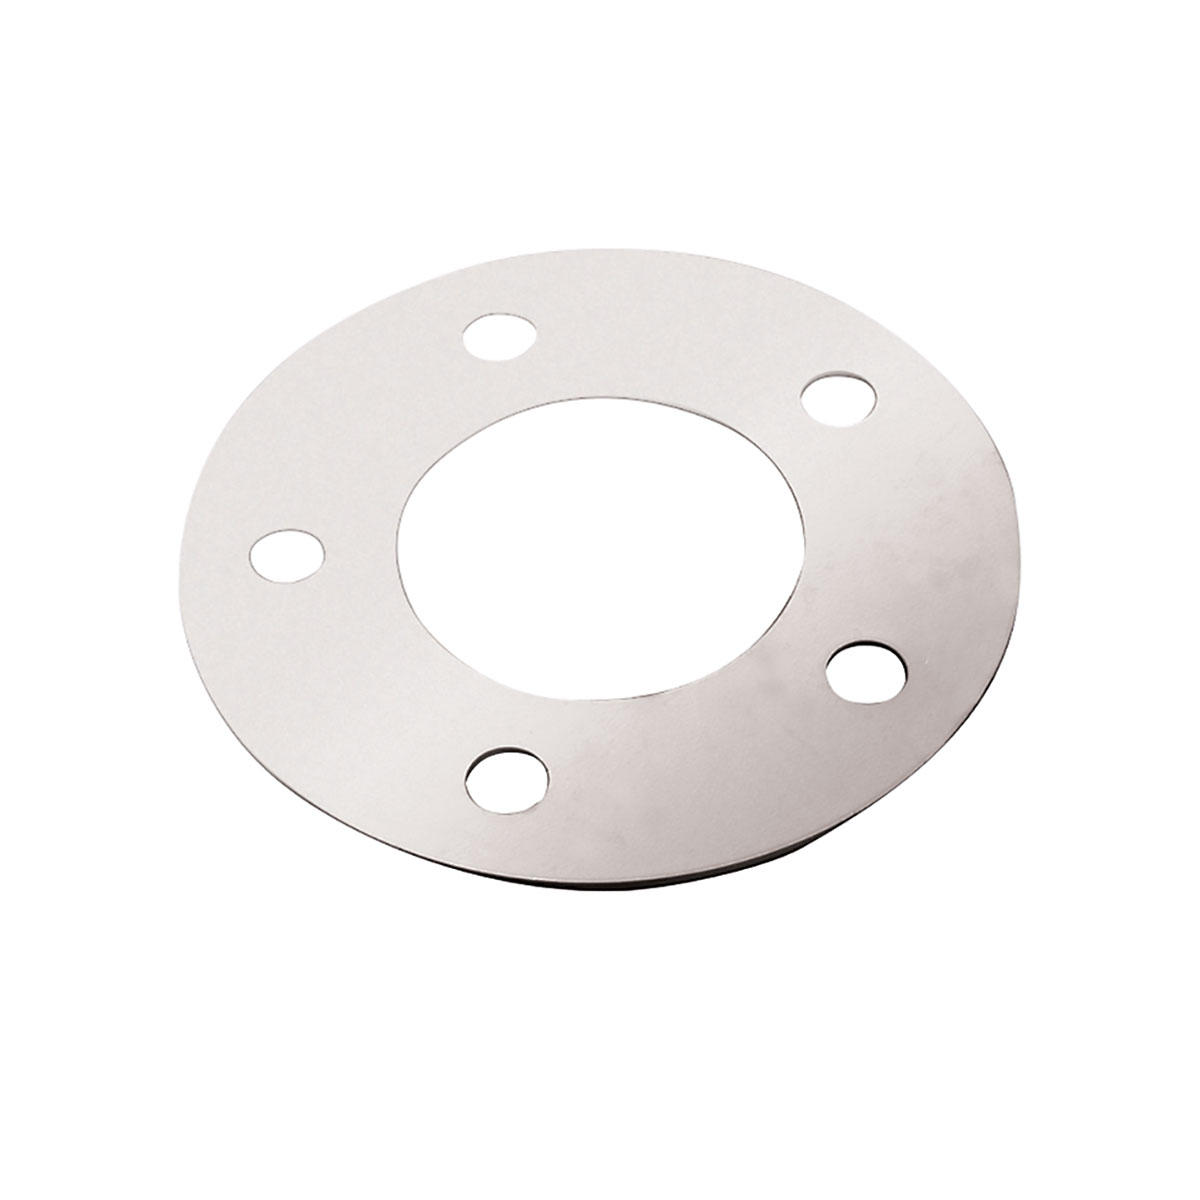 J&P Cycles® Disc Rotor Spacer